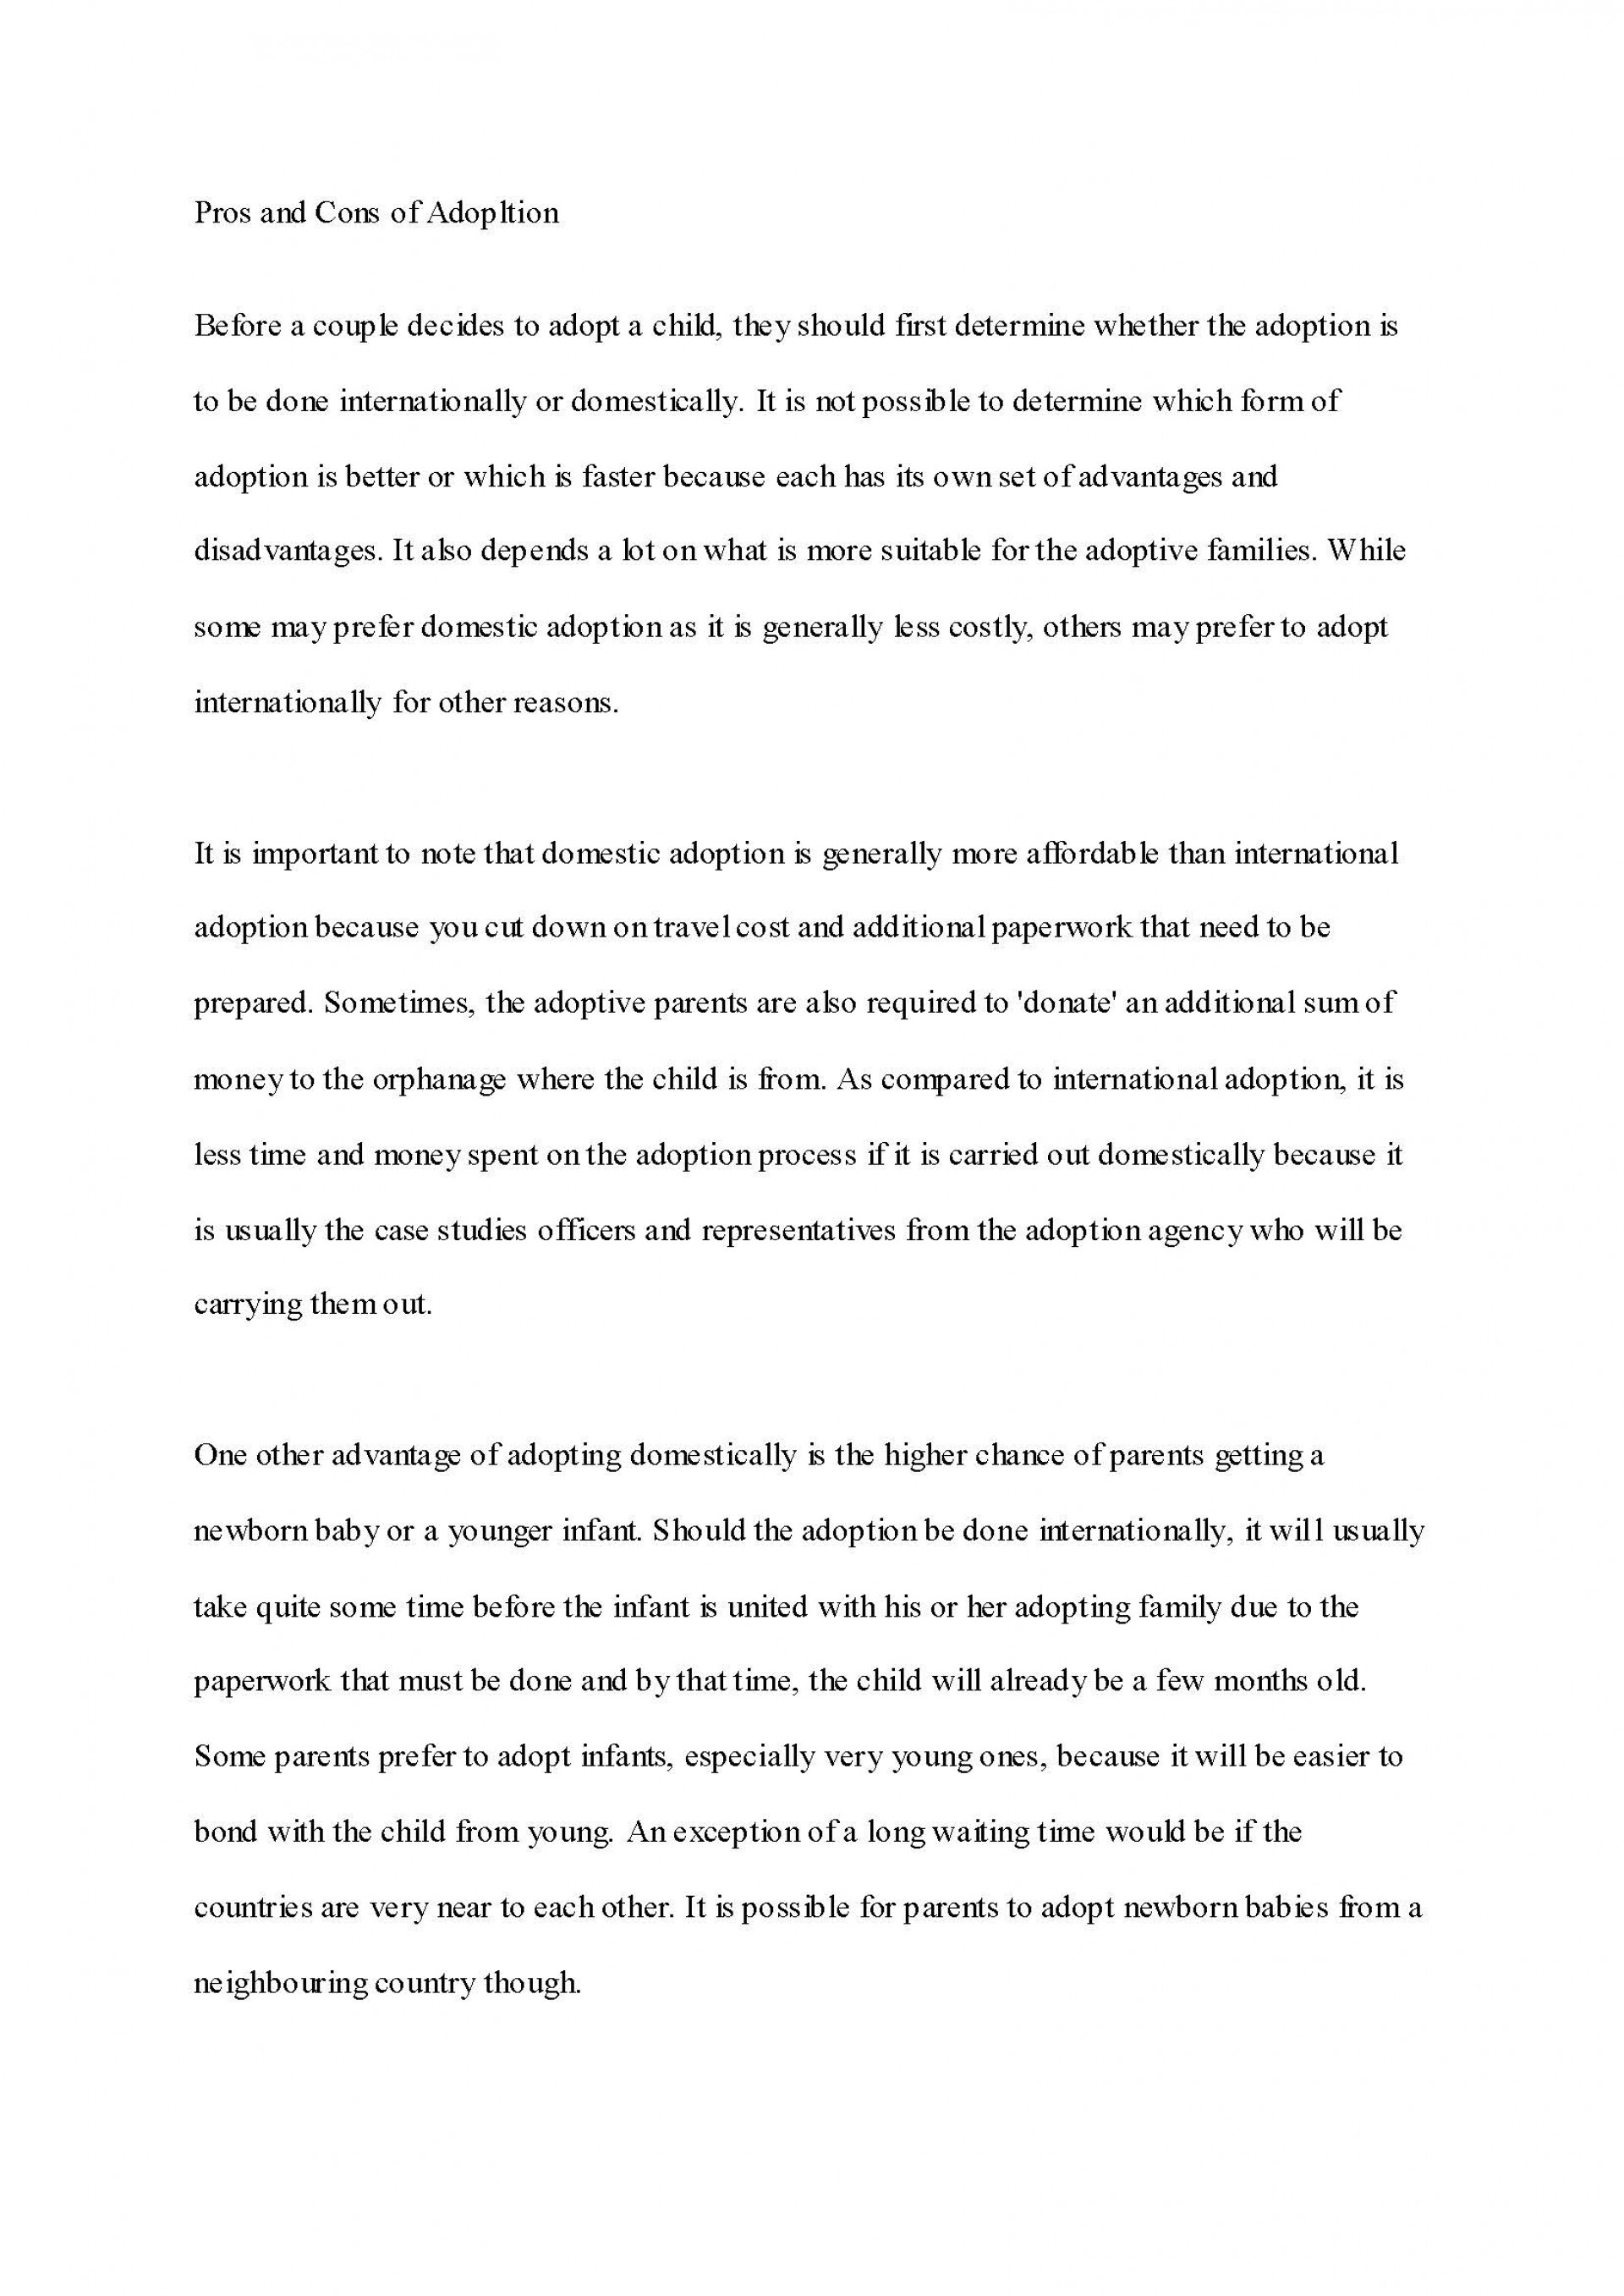 016 Examples Of Persuasive Essays Essay Example Adoption Excellent 5th Grade Written By Graders Argumentative-persuasive Topics 1920